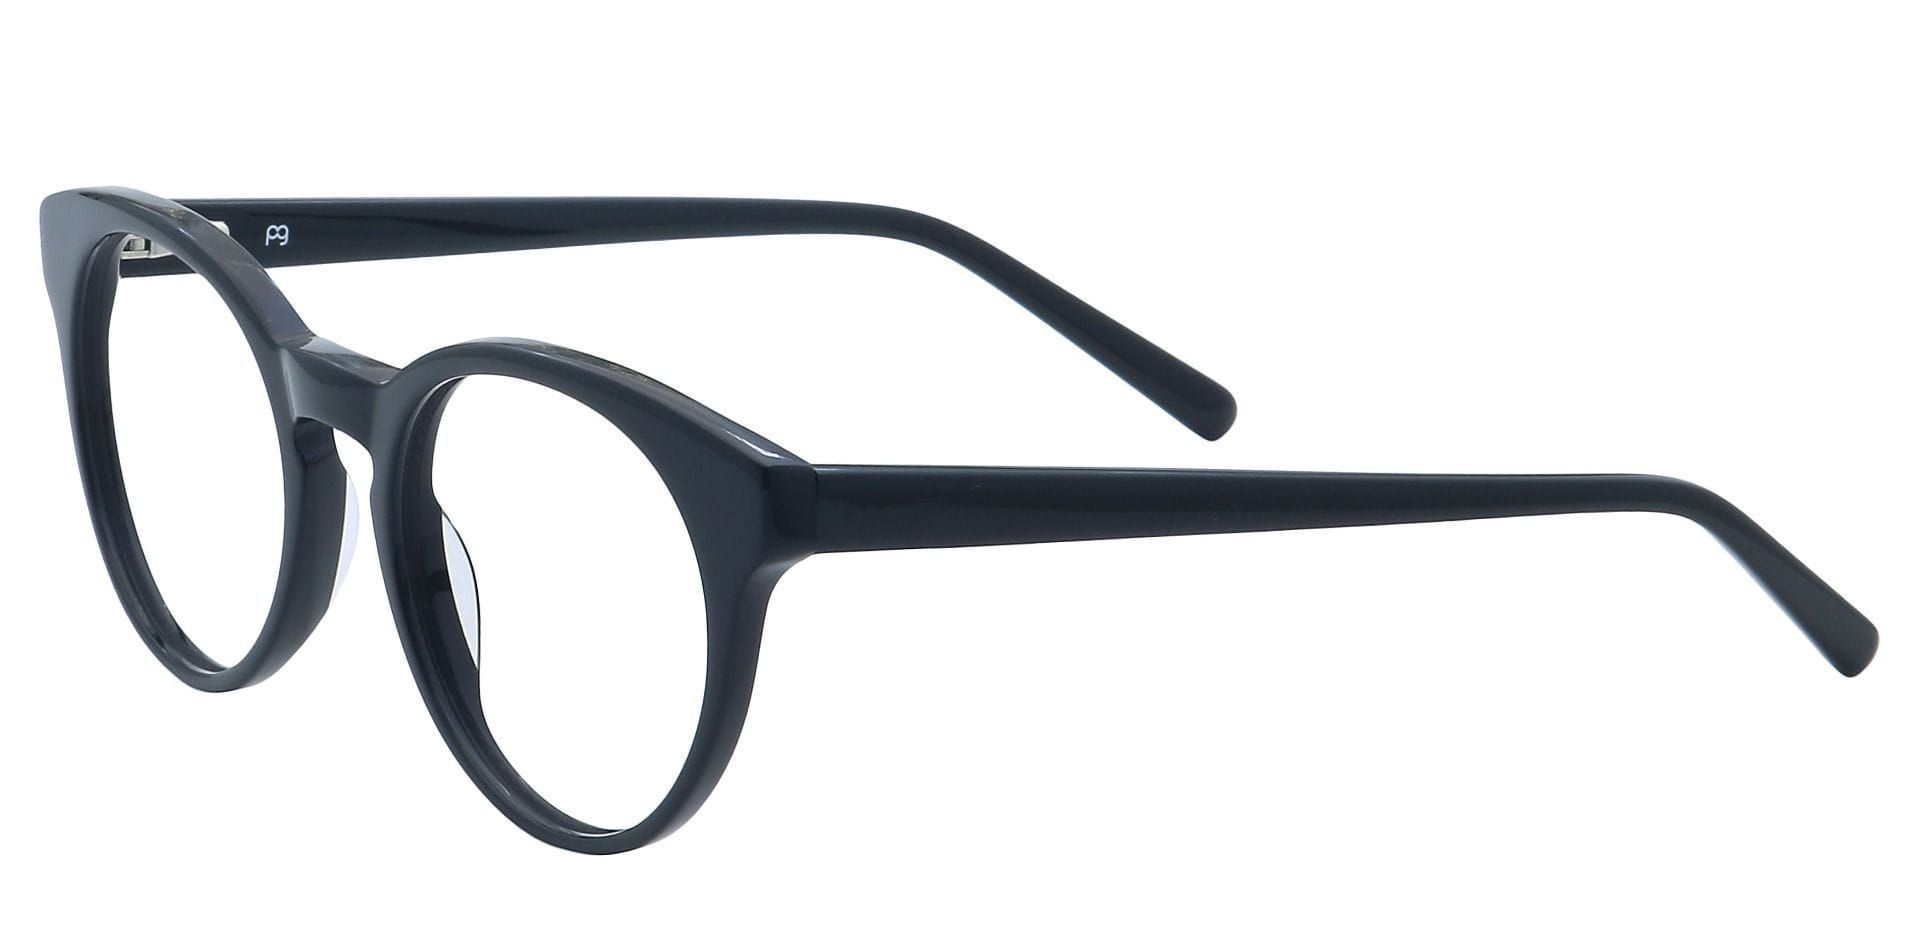 Spright Round Reading Glasses - Black